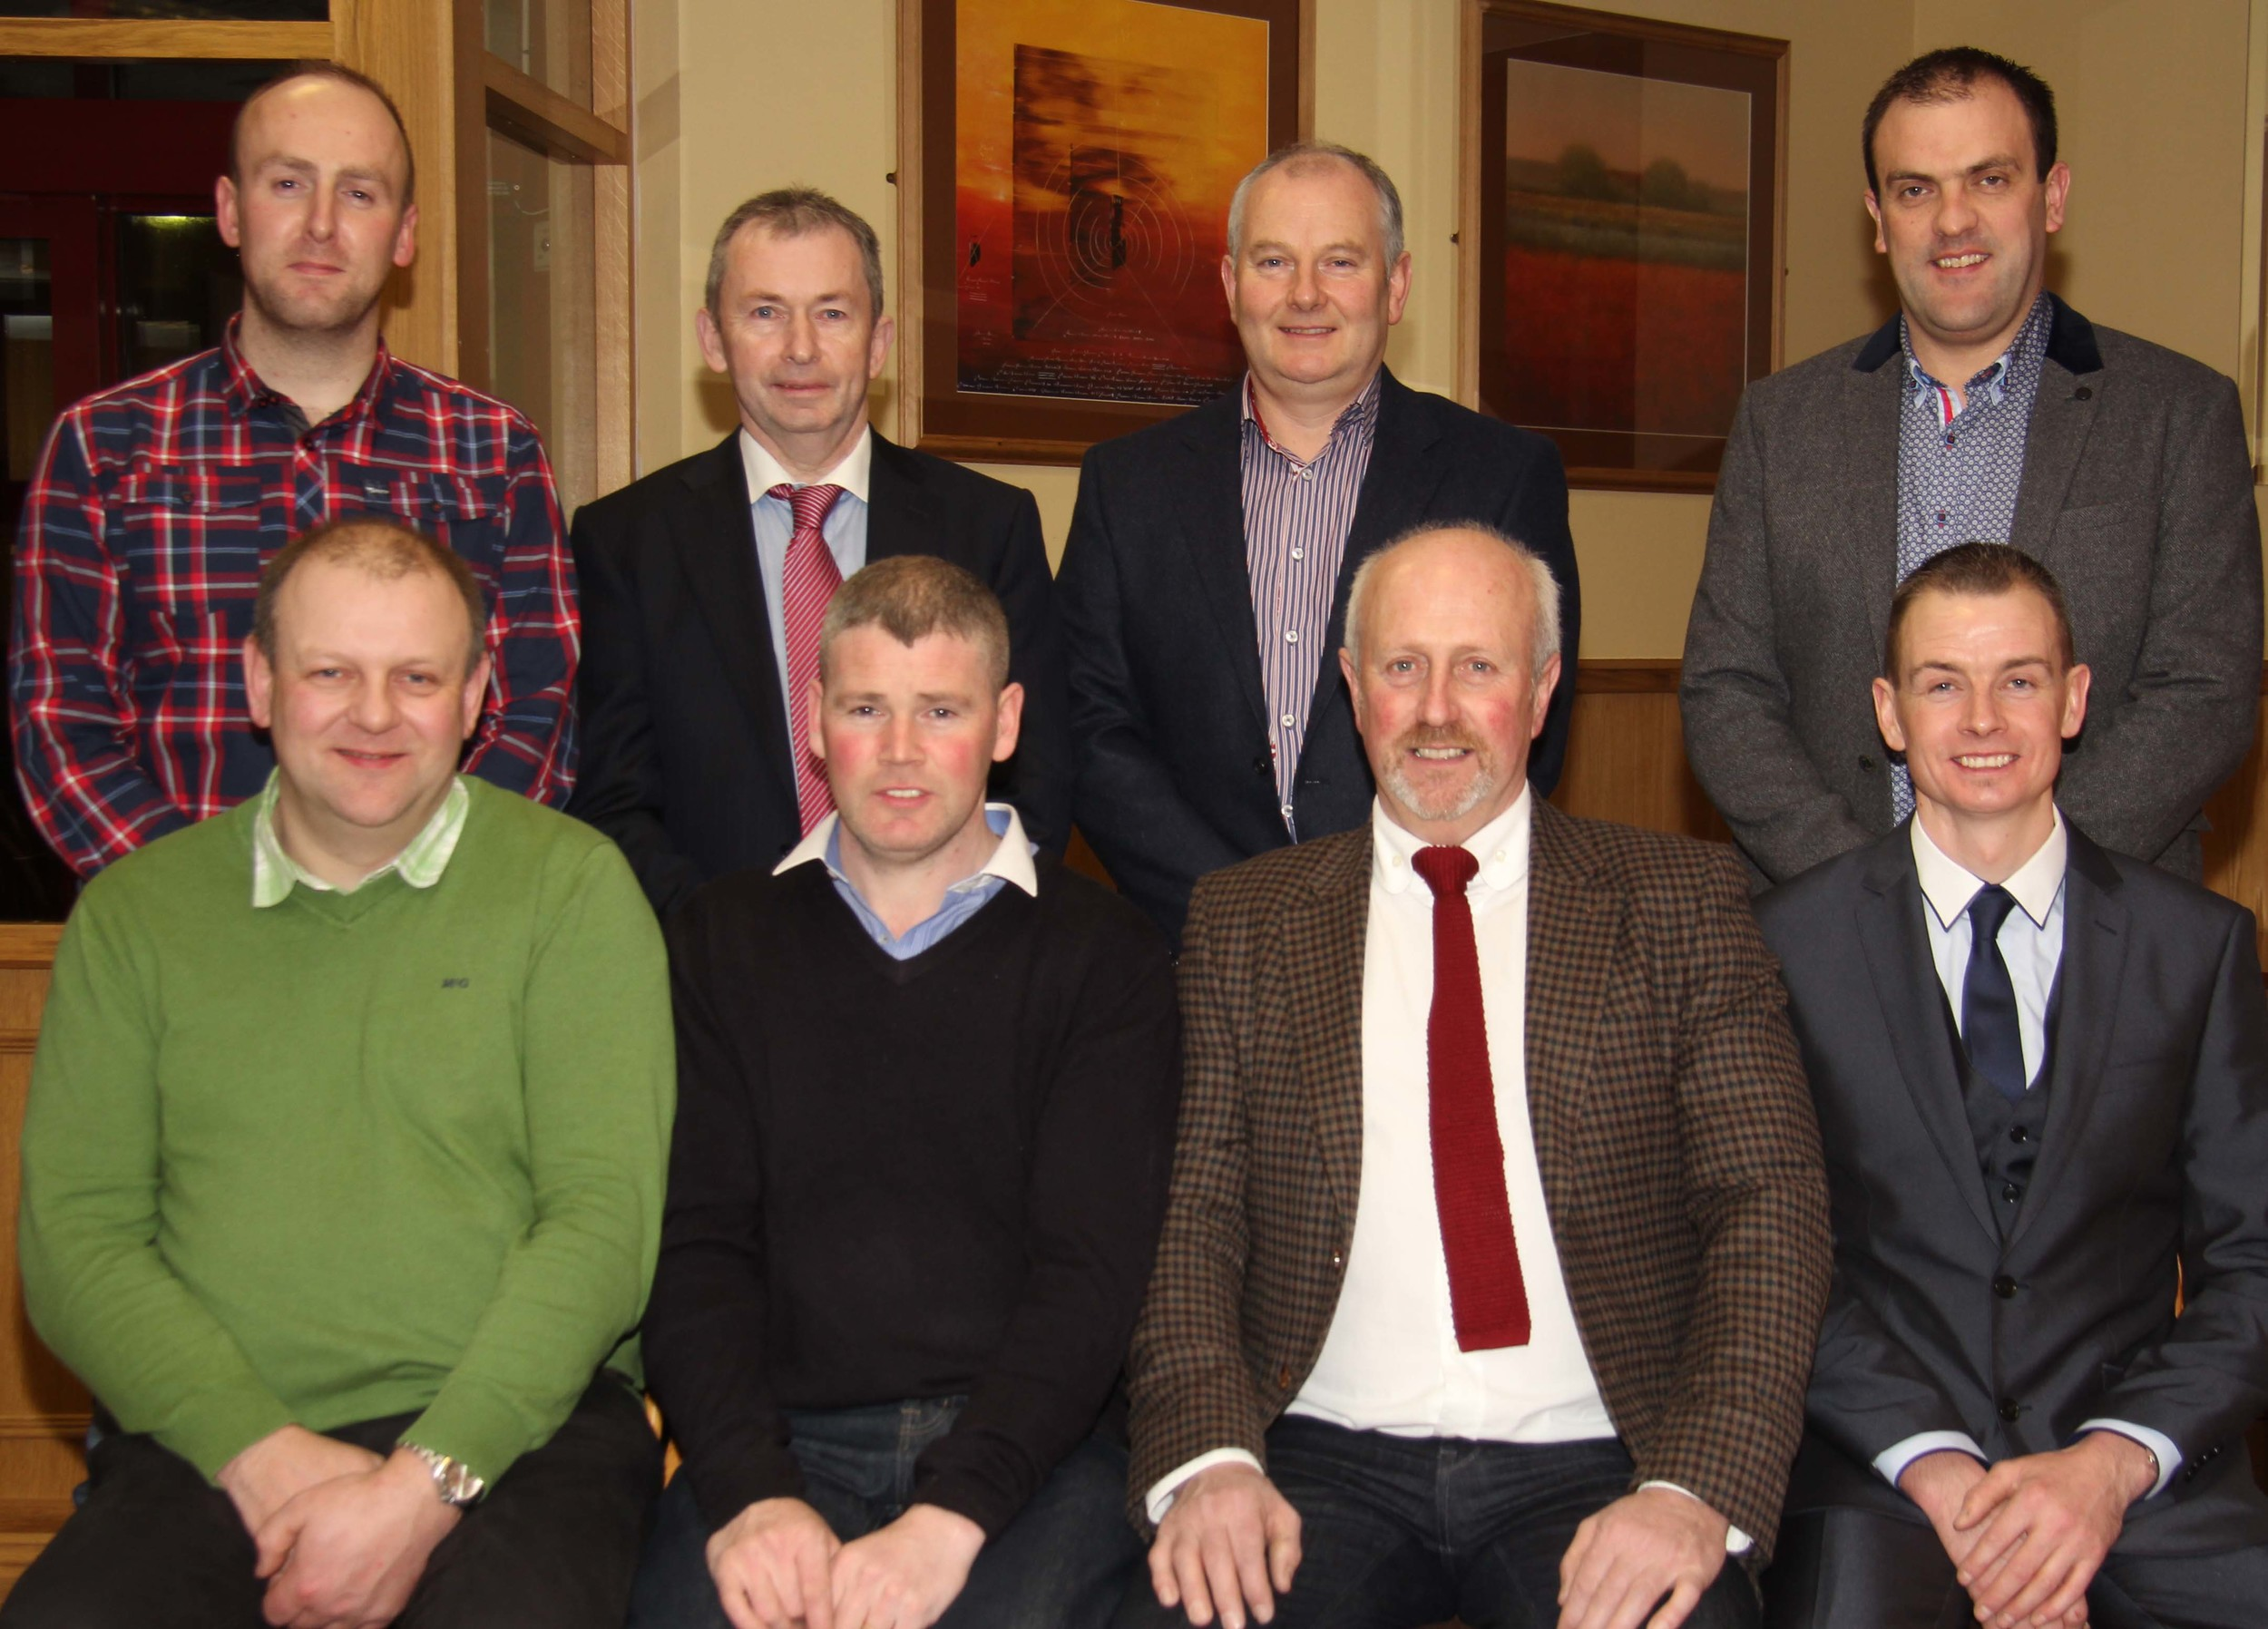 Vice-chairman Matthew Cunning, front left, and chairman Richard Rodgers, right, are pictured with guests at the NI Simmental Cattle Breeders' Club annual dinner, Dungannon. They include: Eamon McCloskey, Woodcraft Kitchens; Nigel Glasgow, Millburn Concrete; Neill Acheson, Animax; Andrew Tecey, Danske Bank; Francis Connon, Connon General Merchants; and Ian Cummins, Irwin Feeds.